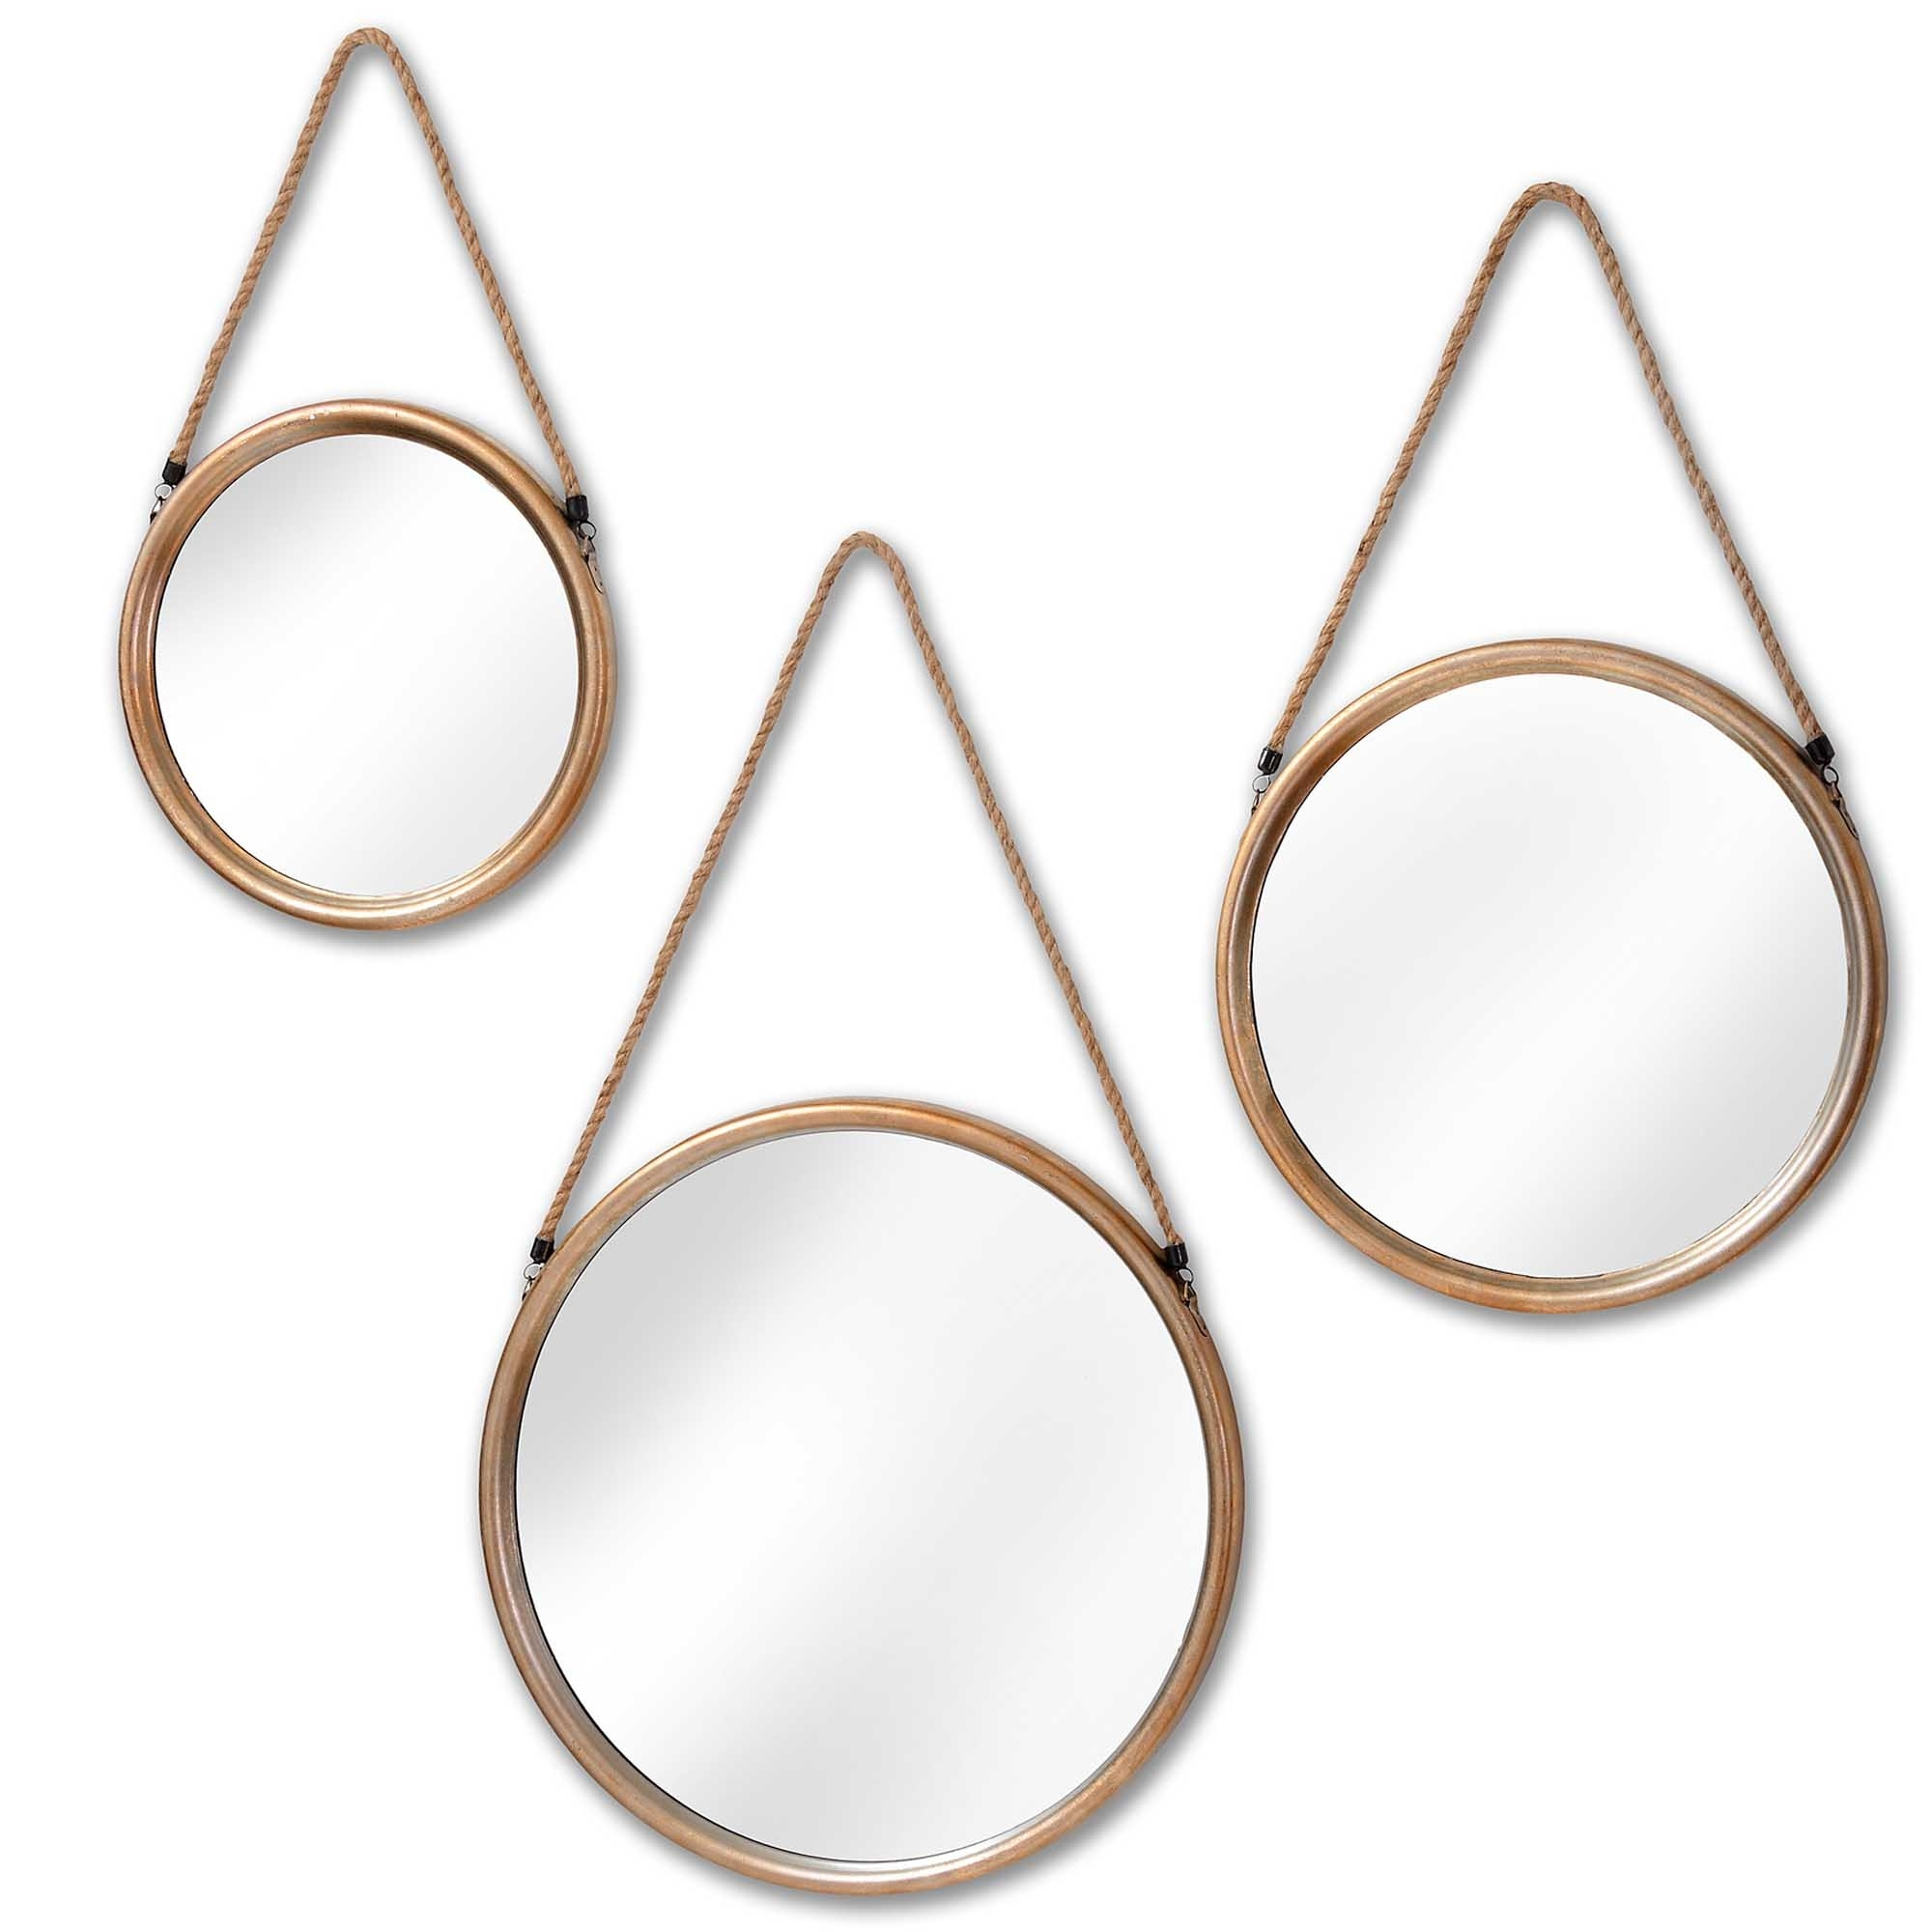 Set Of 3 Hanging Round Gold Wall Mirrors Decor Homesdirect365